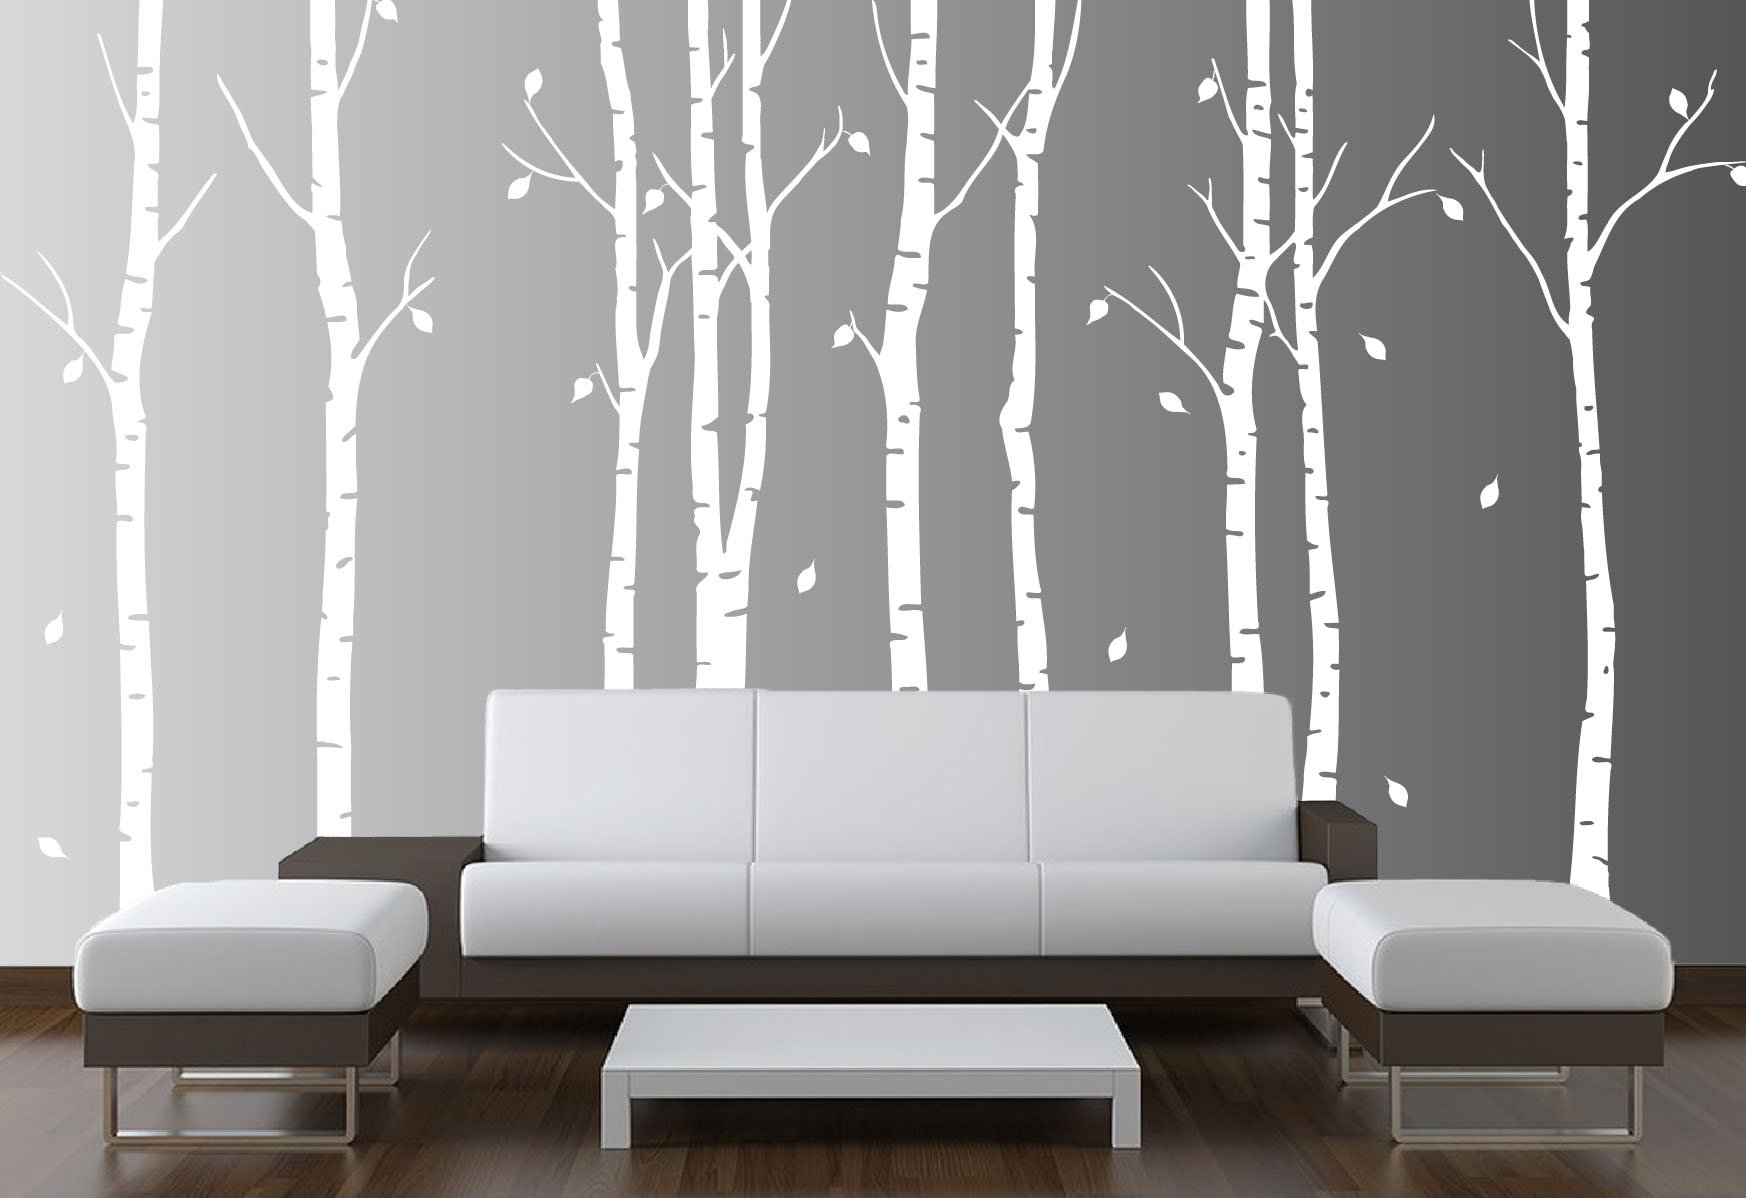 Birch Tree Wall Decal Nursery Forest Vinyl Sticker Removable Animals Branches Art Stencil Leaves (9 Trees) #1263 (Matte White, 96'' (8ft) Tall) by Innovative Stencils